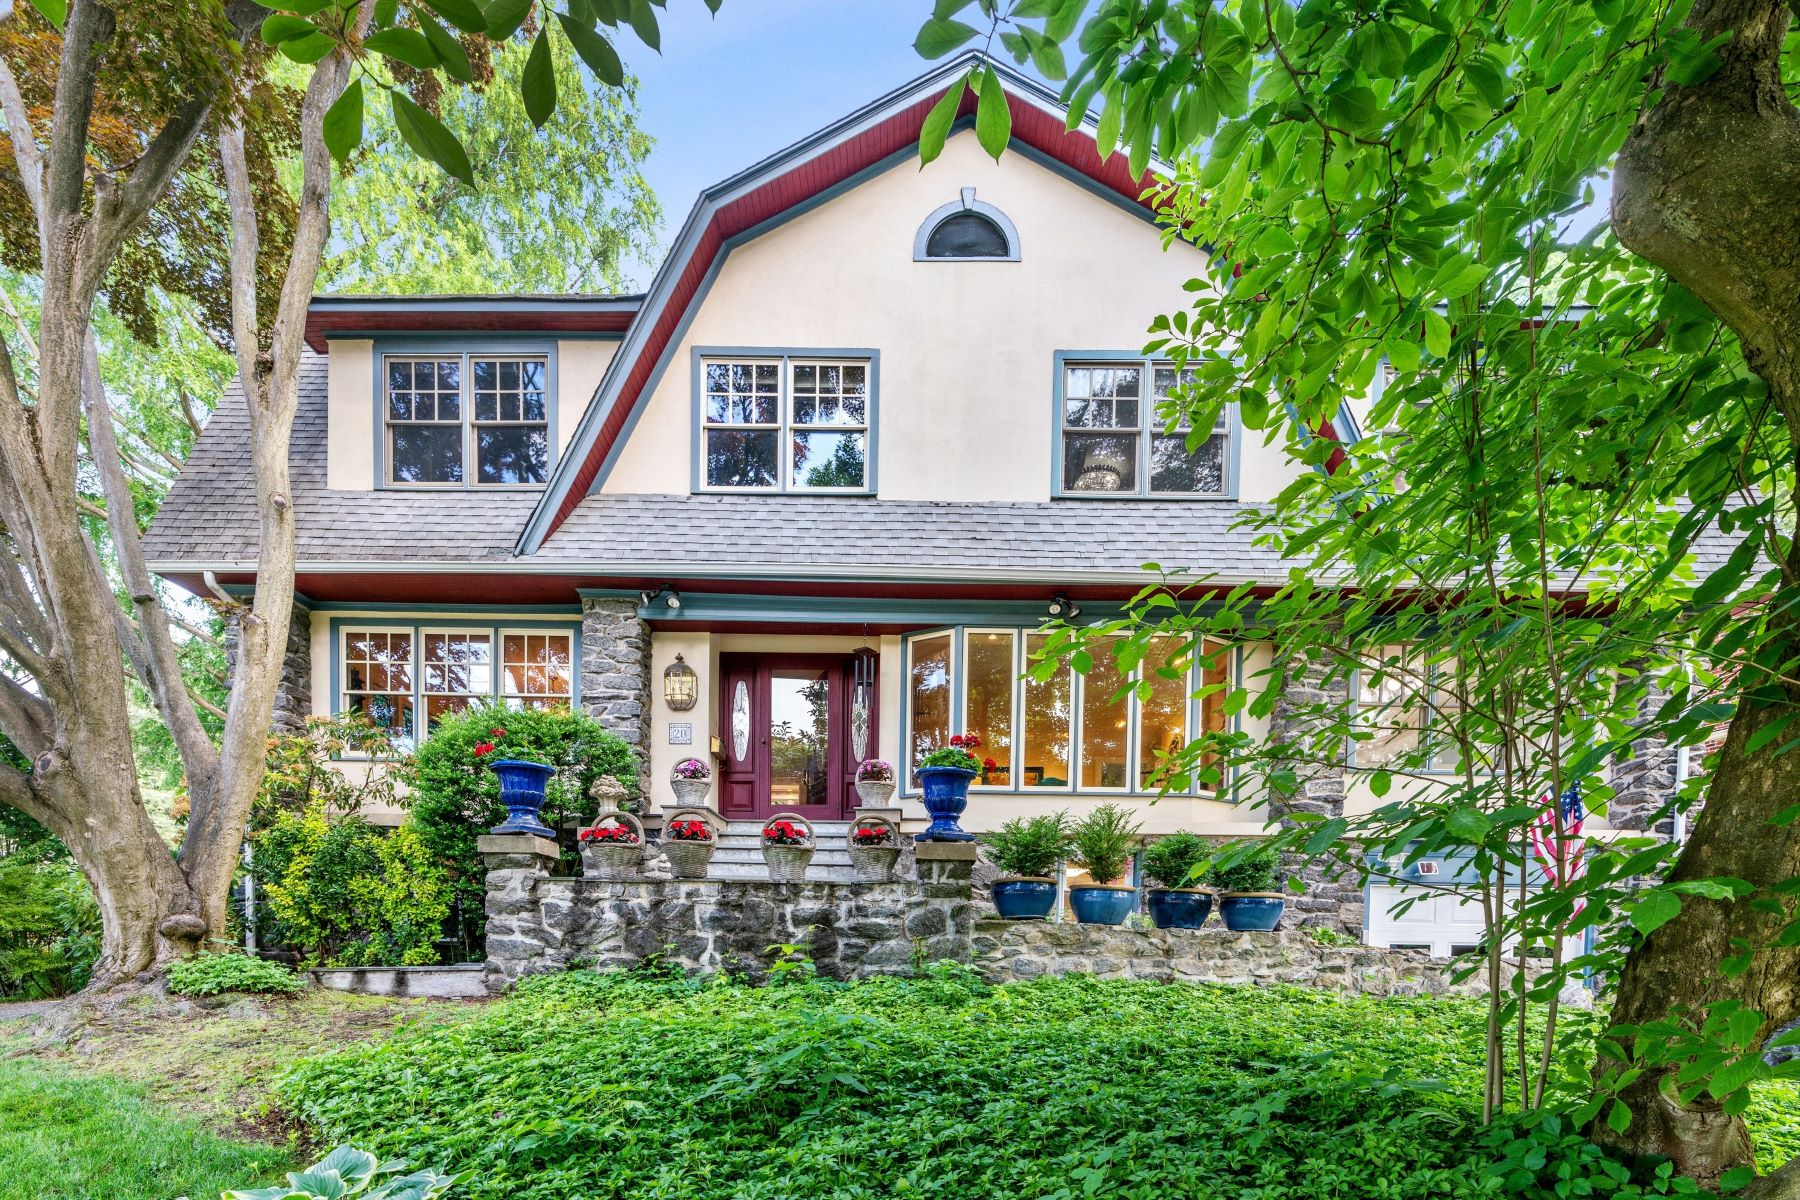 Single Family Homes for Active at 20 Crescent Road Larchmont, New York 10538 United States